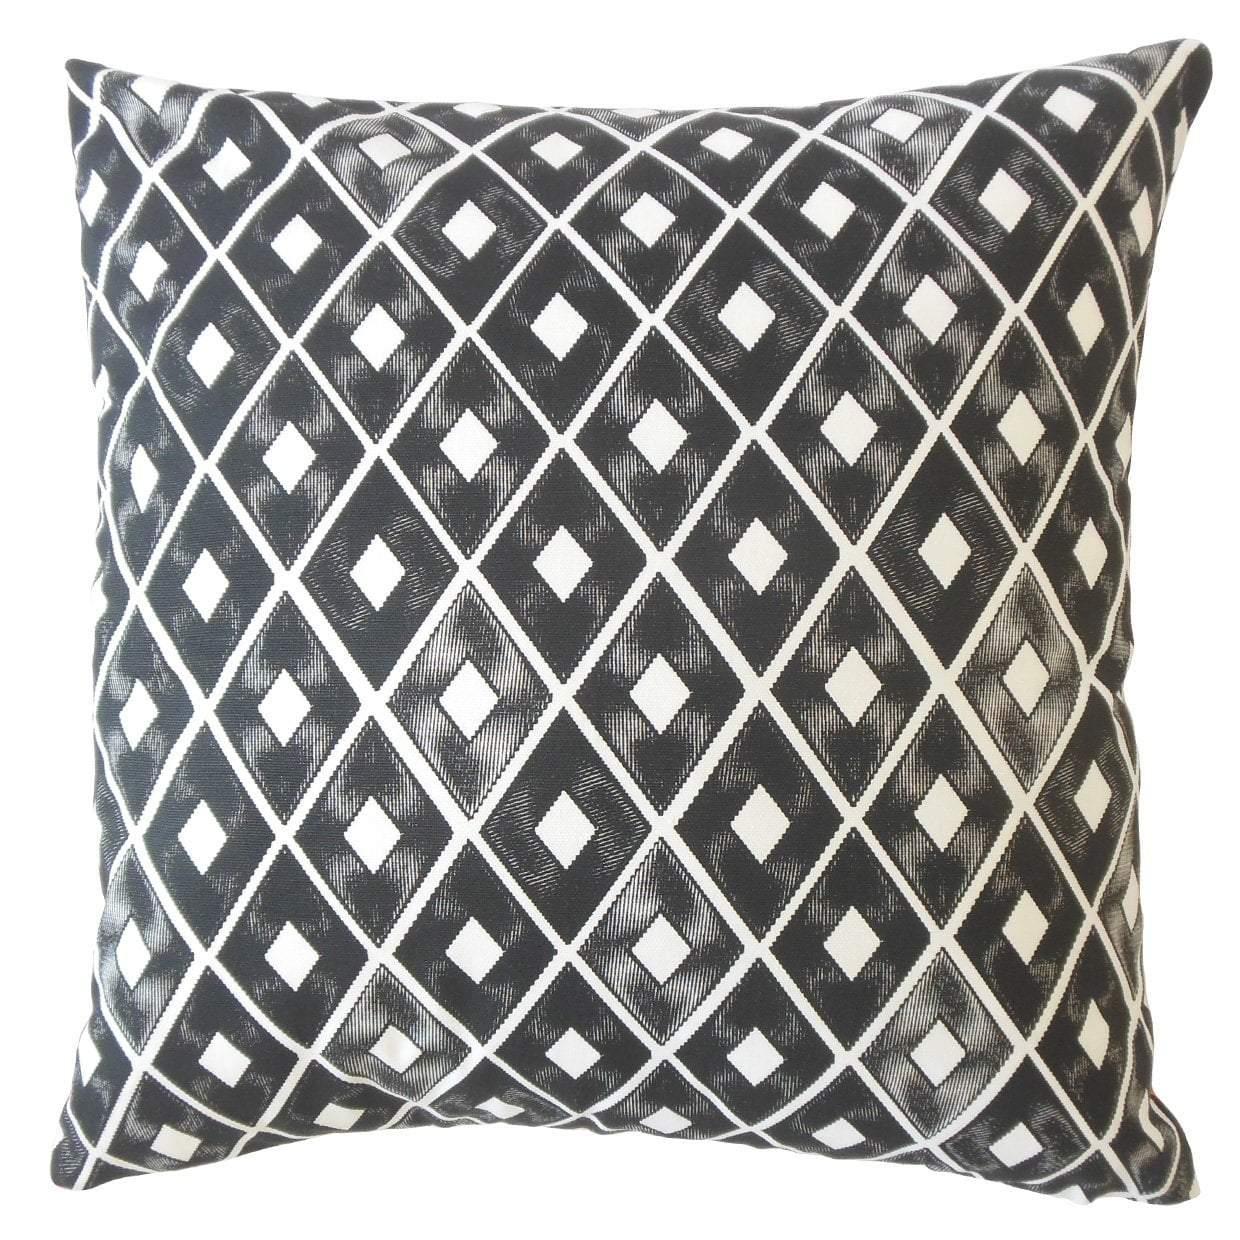 Butler Throw Pillow Cover